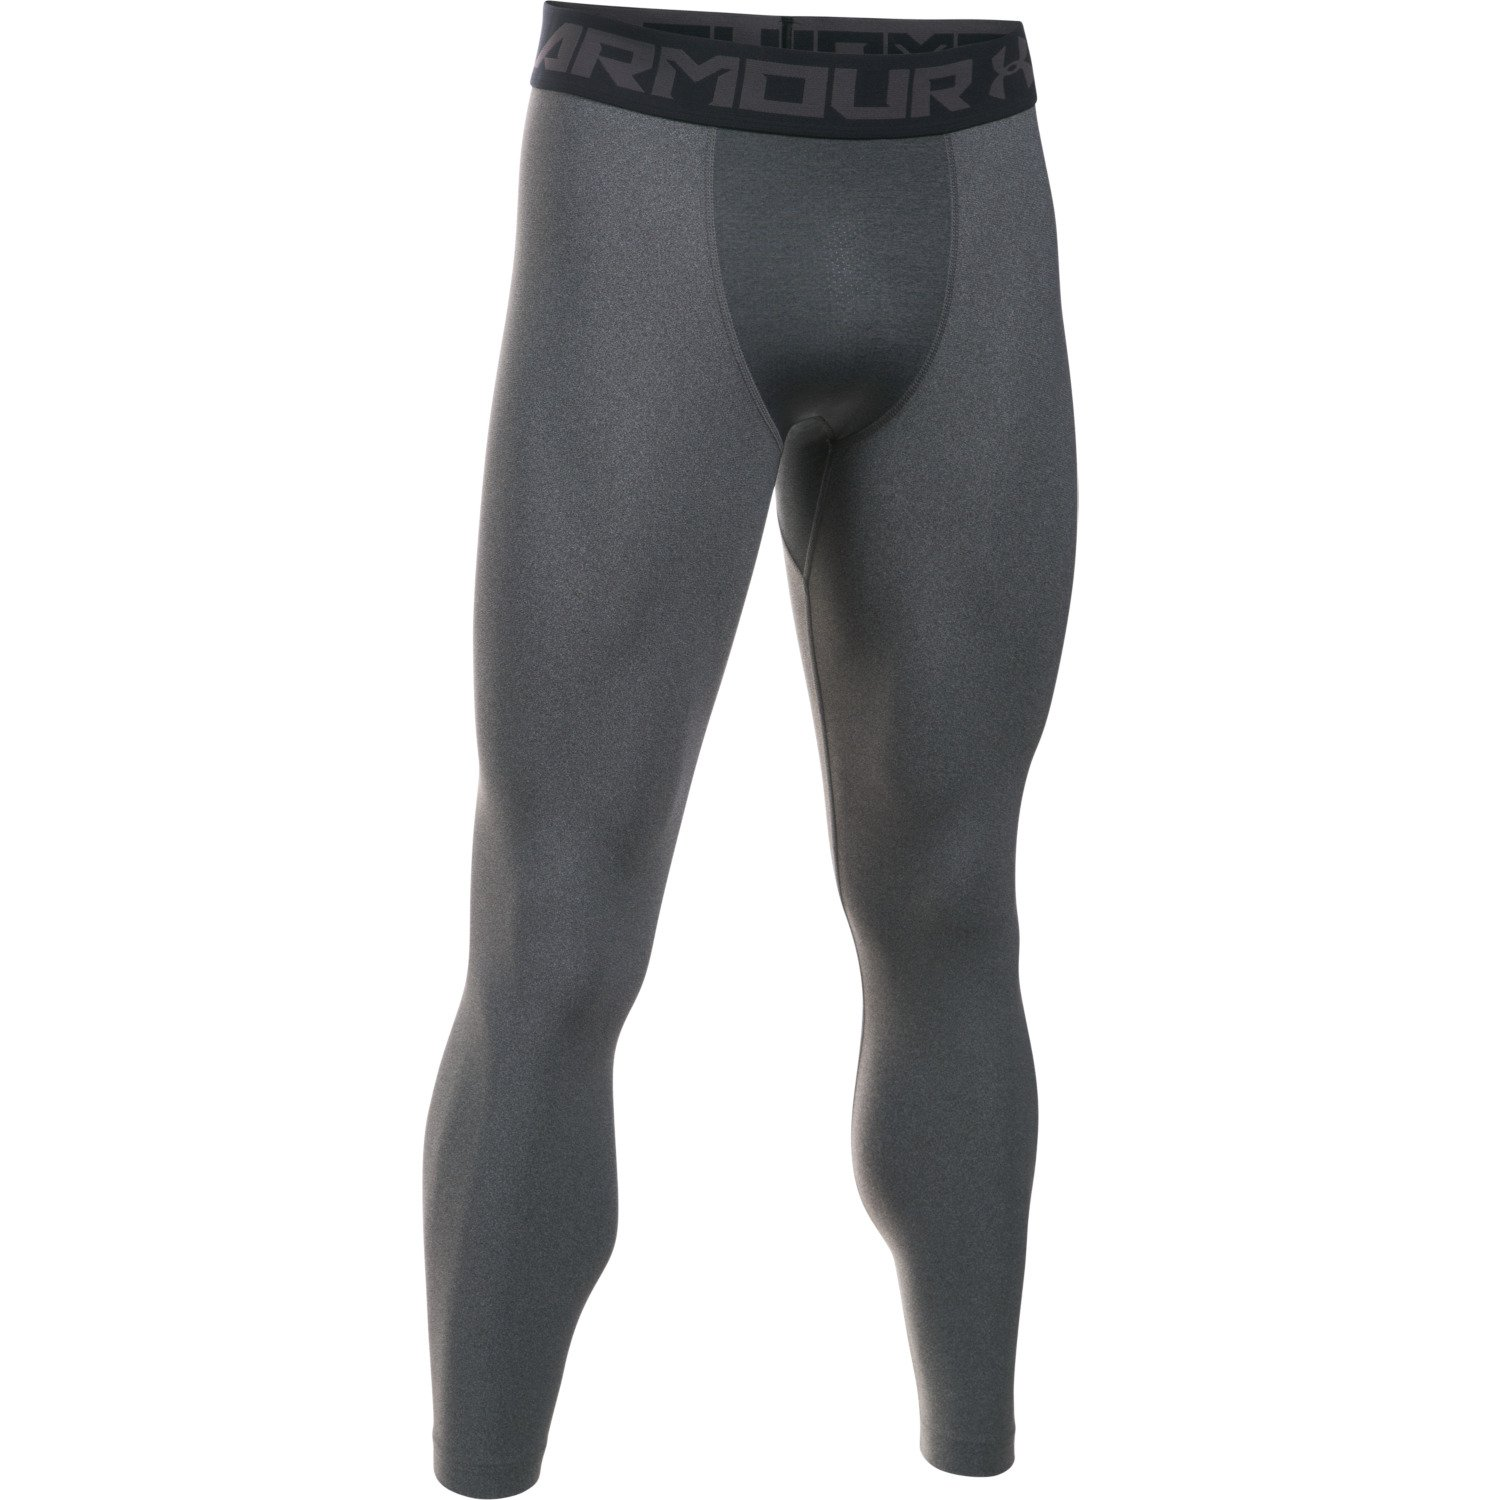 27264f2b5d79c Display product reviews for Under Armour Men s HeatGear Armour Compression  Legging